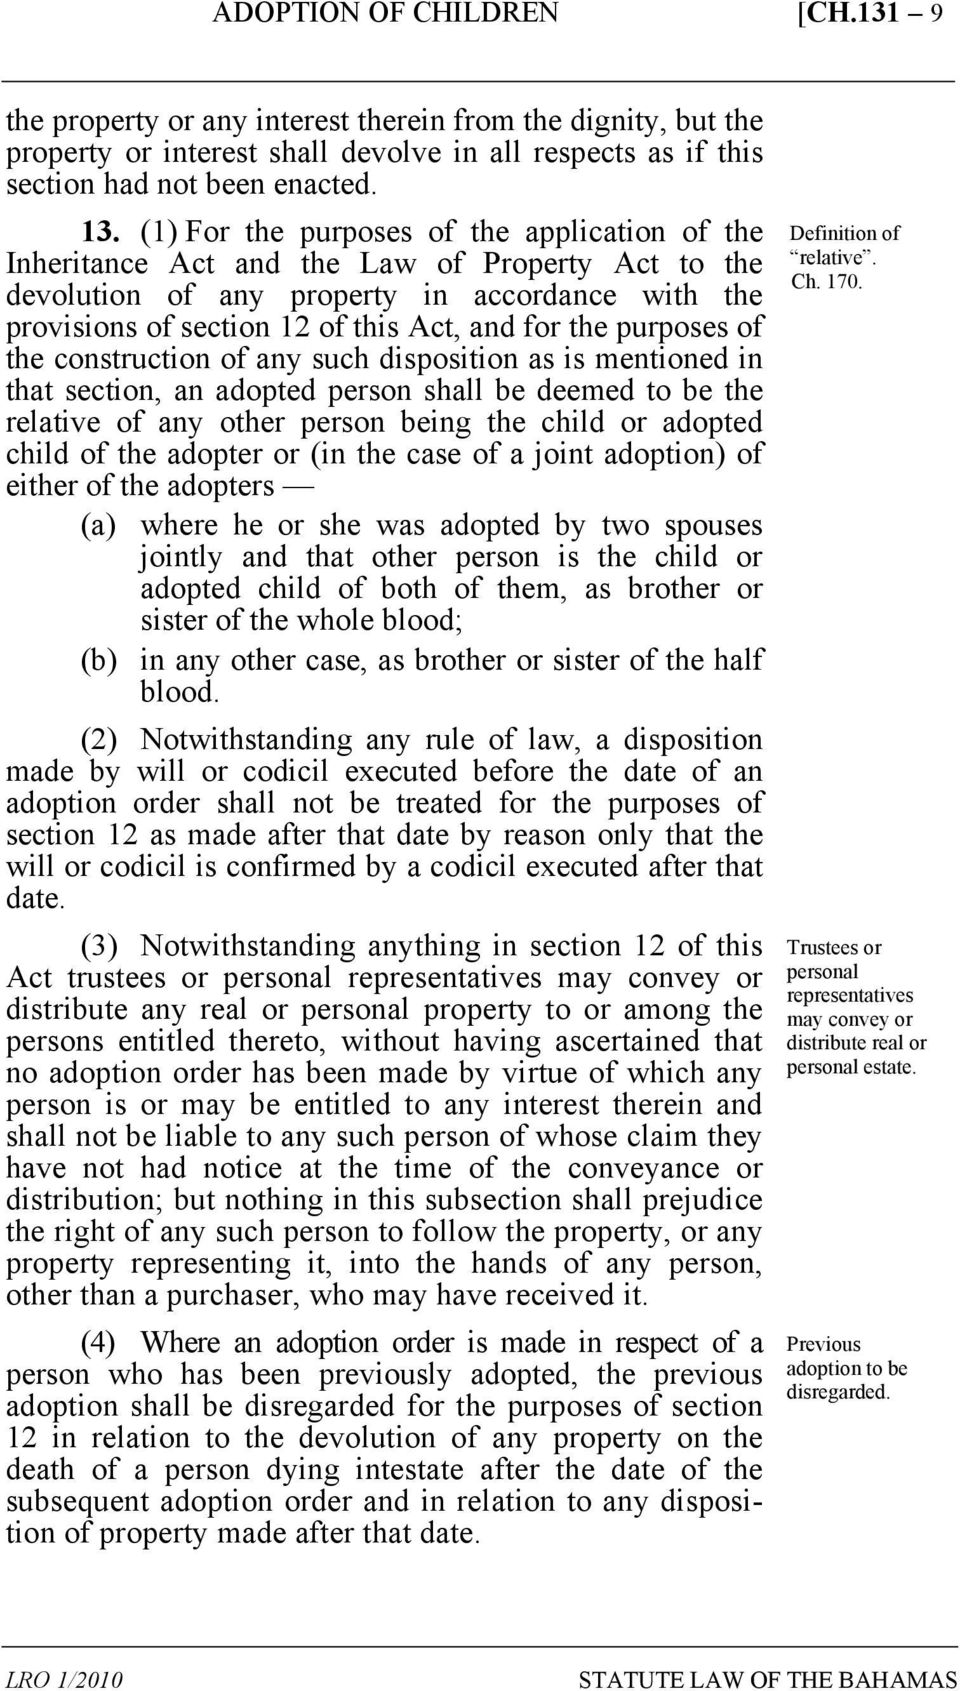 purposes of the construction of any such disposition as is mentioned in that section, an adopted person shall be deemed to be the relative of any other person being the child or adopted child of the